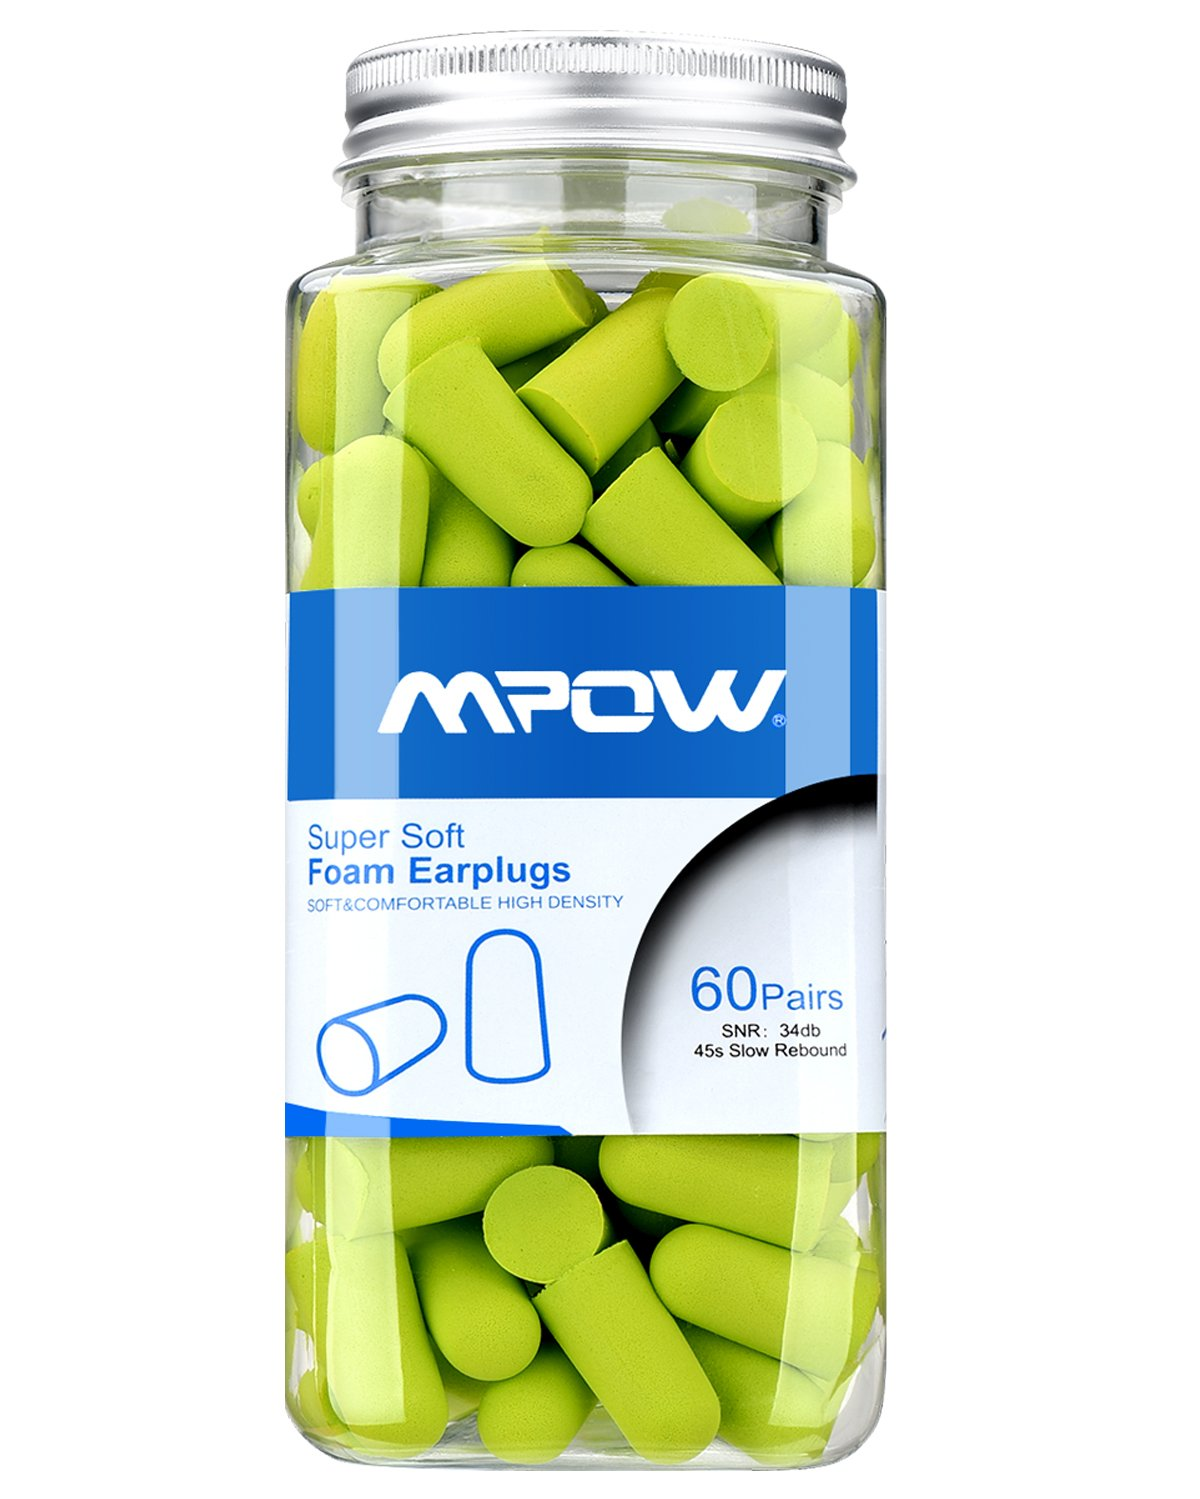 Mpow Foam Earplug, 34dB Highest NRR, 60 Pairs with Aluminum Carry Case, for Hearing Protection, Noise Reduction, Hunting Season, Sleeping, Snoring, Working, Shooting, Travel, Concert